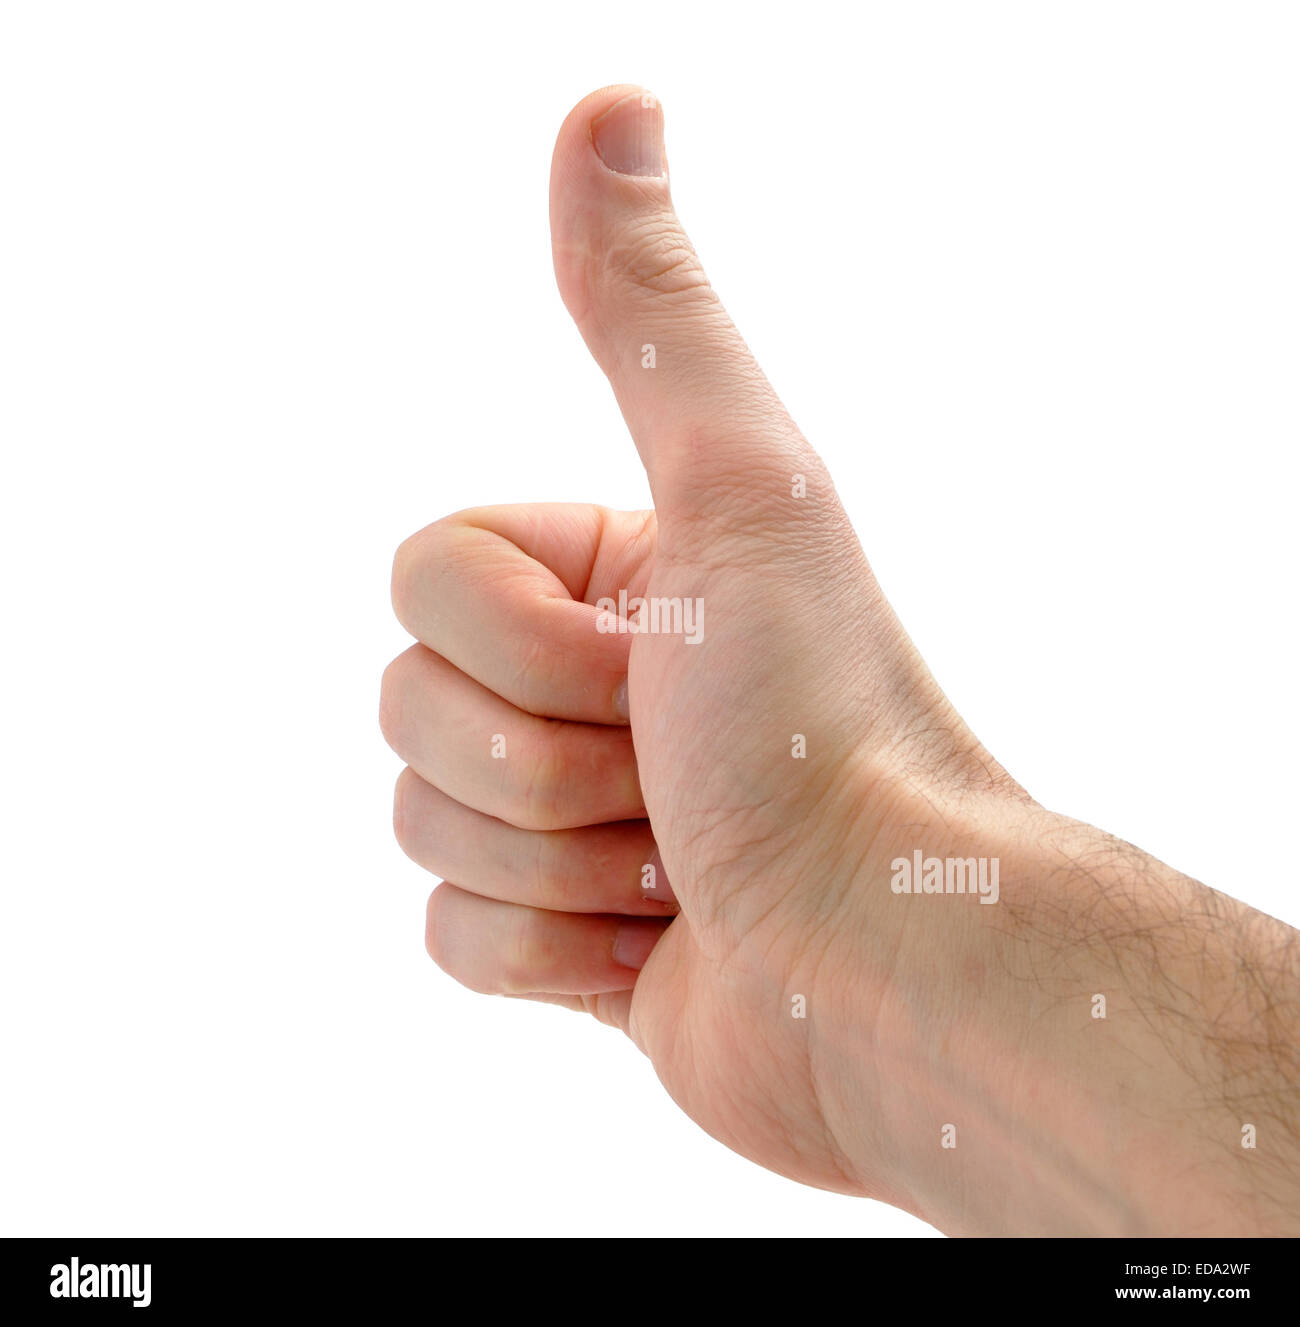 male hand showing thumbs up sign against white background - Stock Image